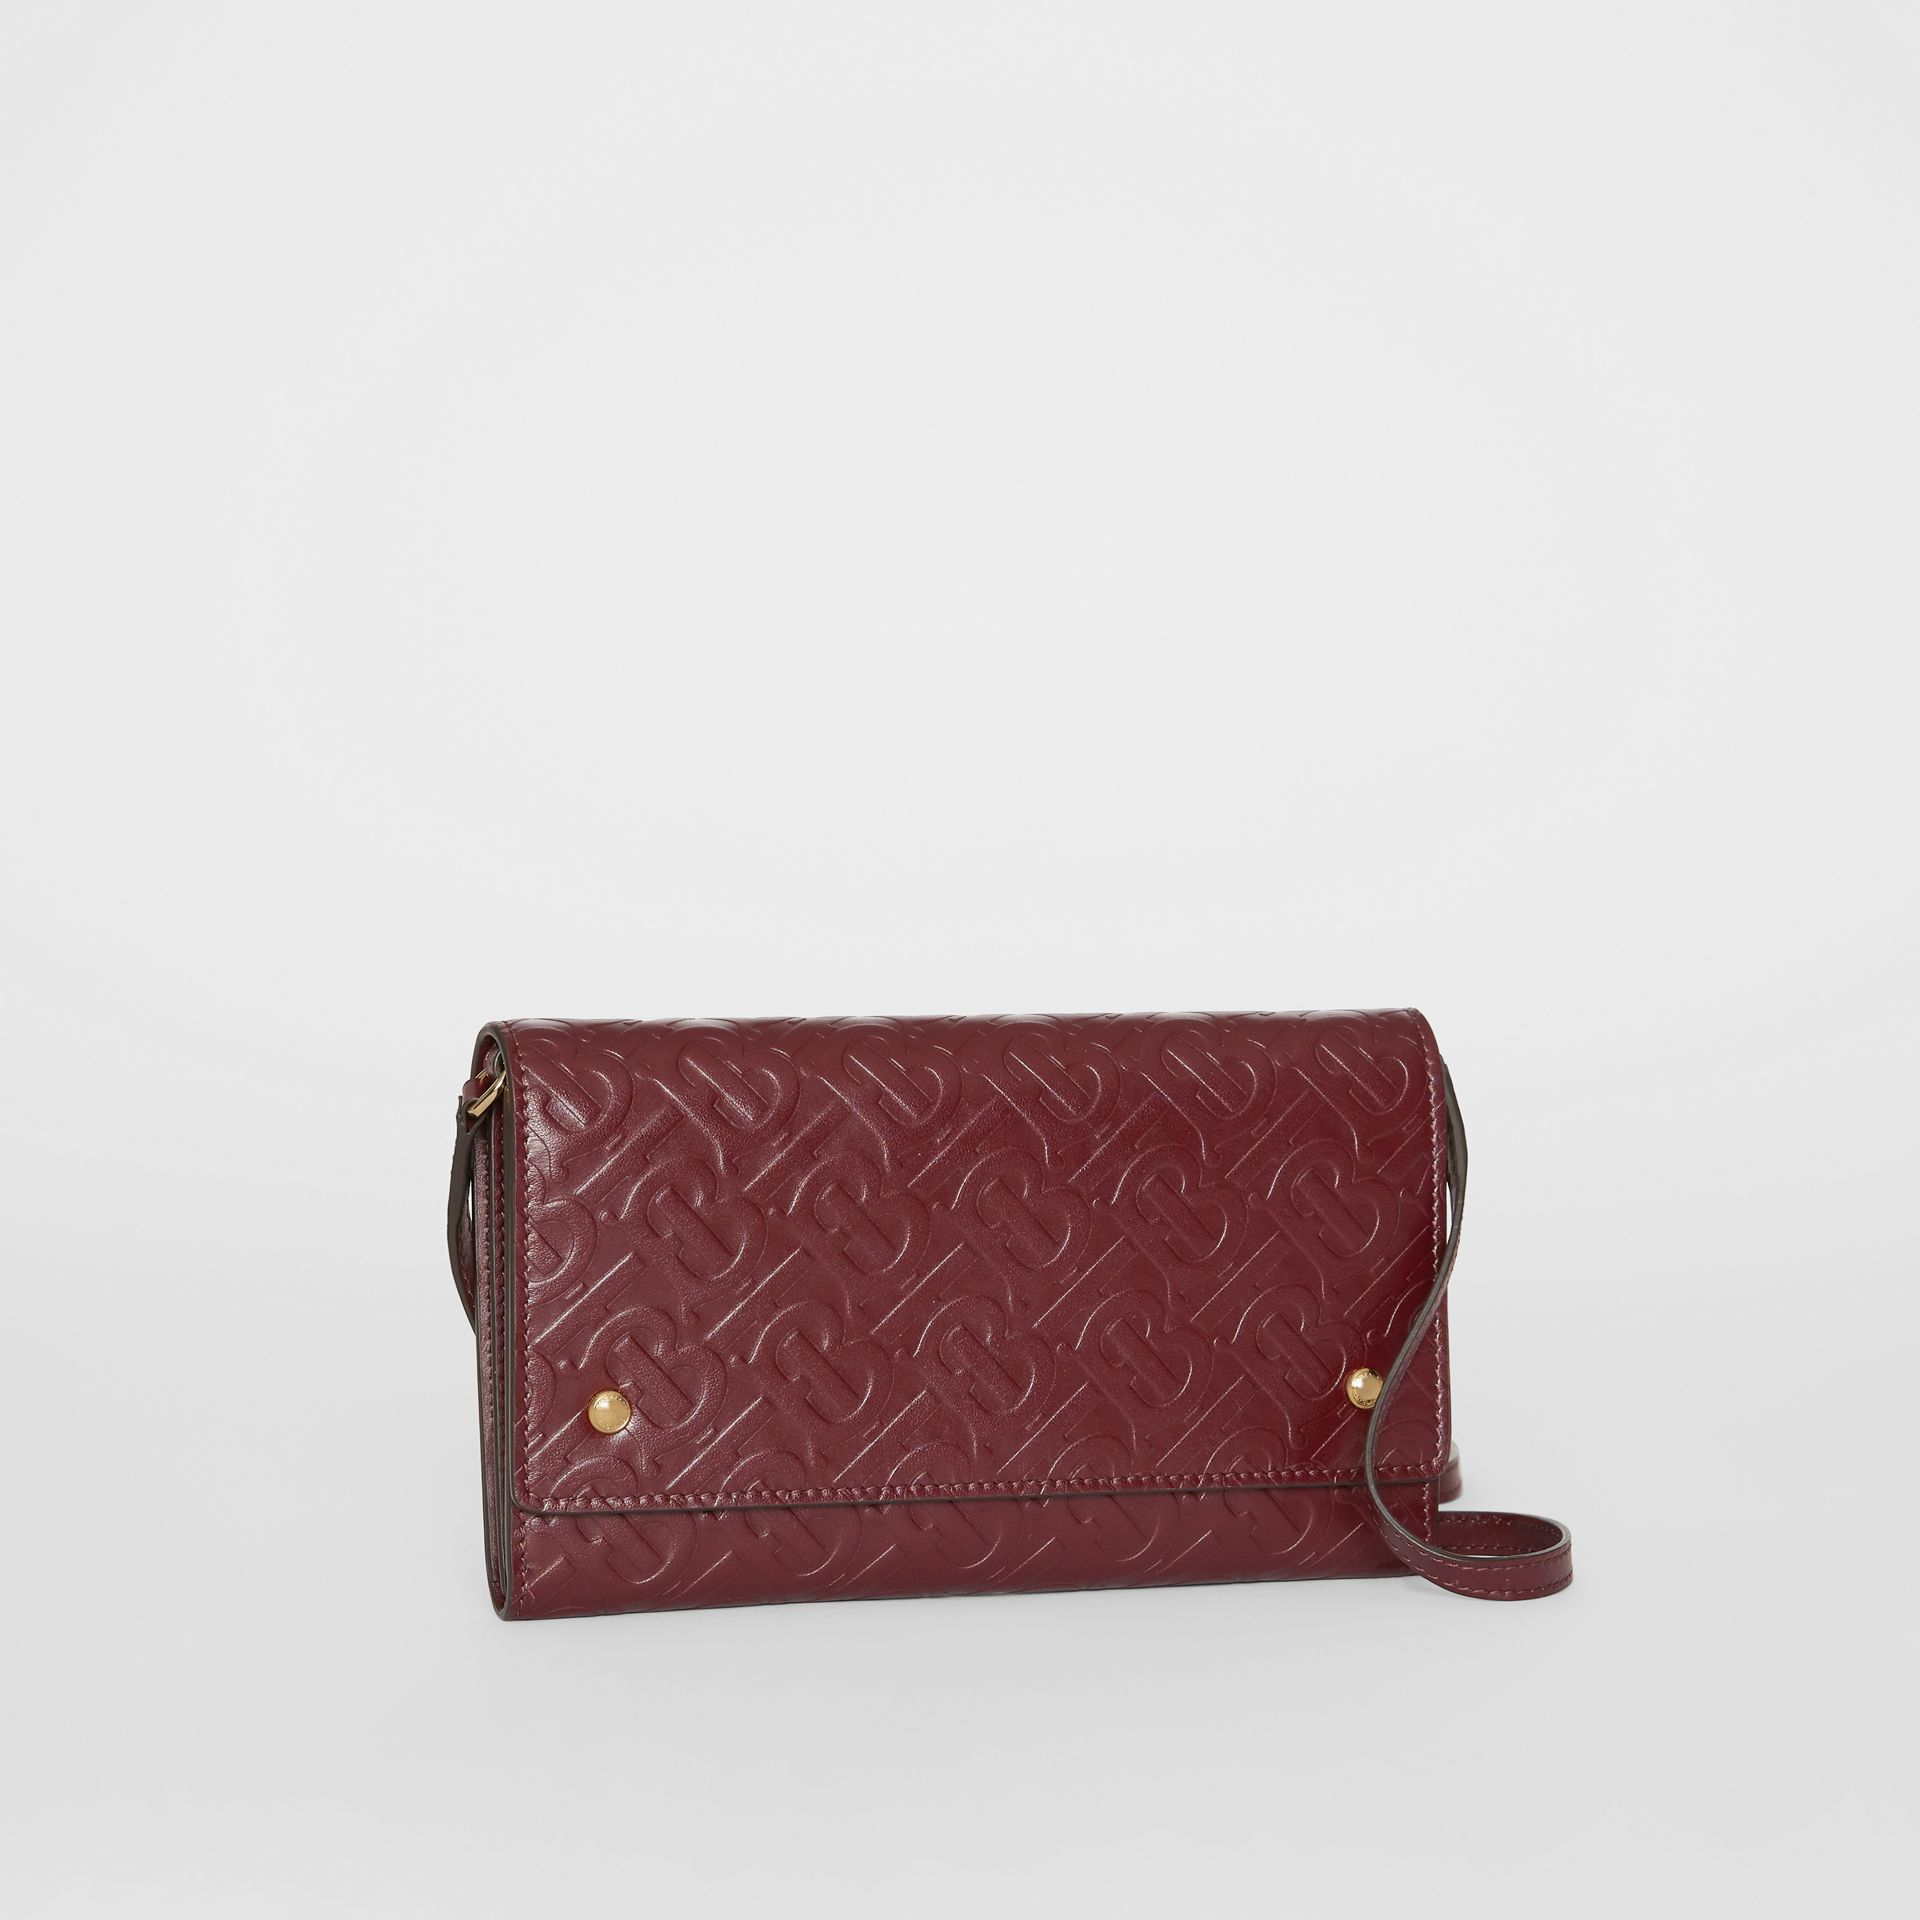 Monogram Leather Wallet with Detachable Strap in Oxblood - Women | Burberry - gallery image 6